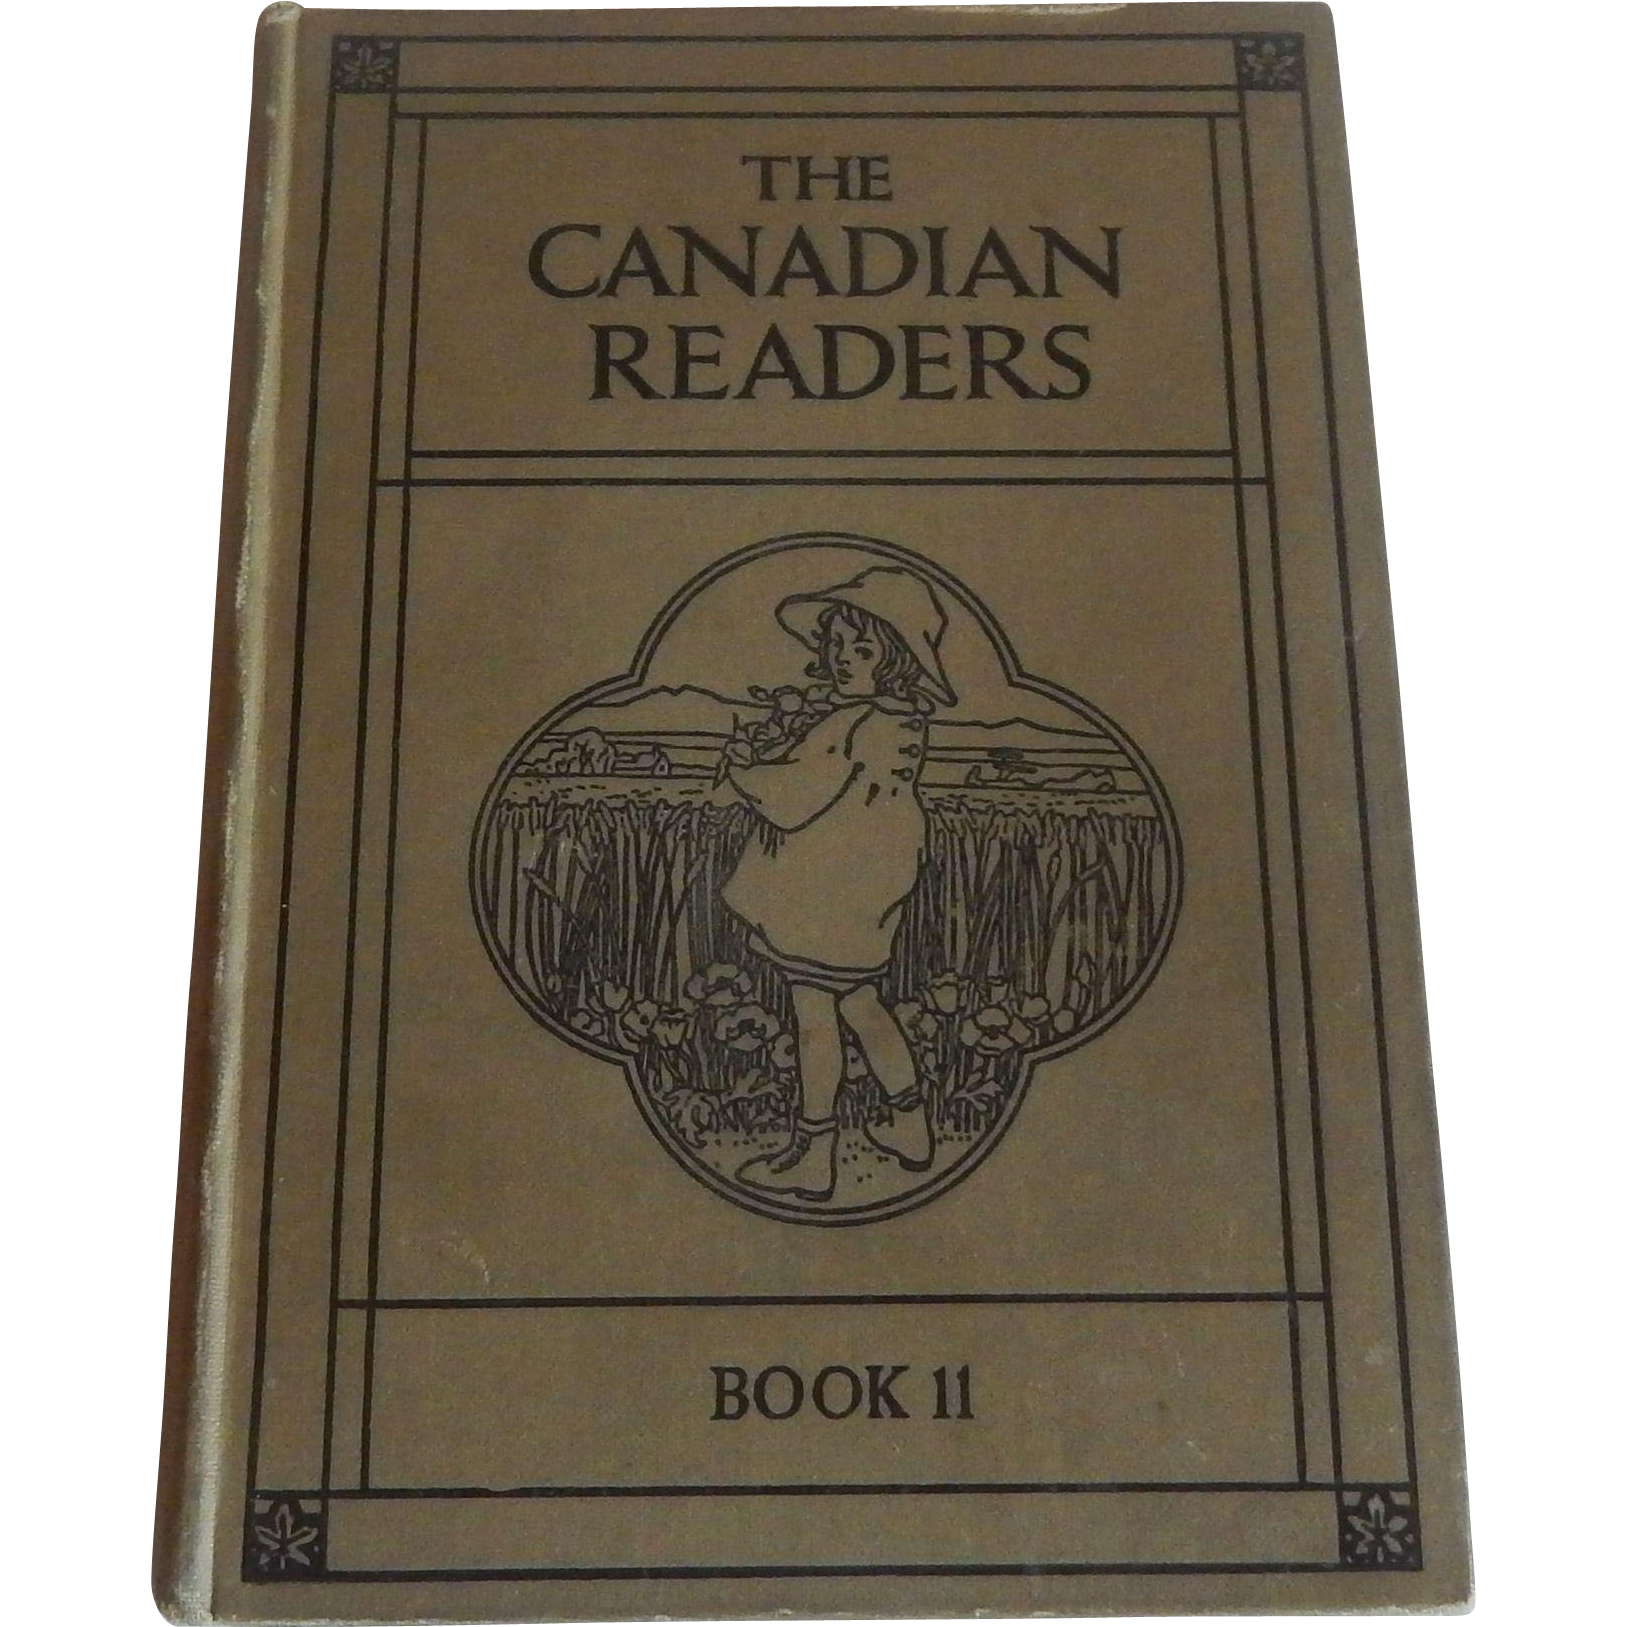 The Canadian Readers Book II 1931